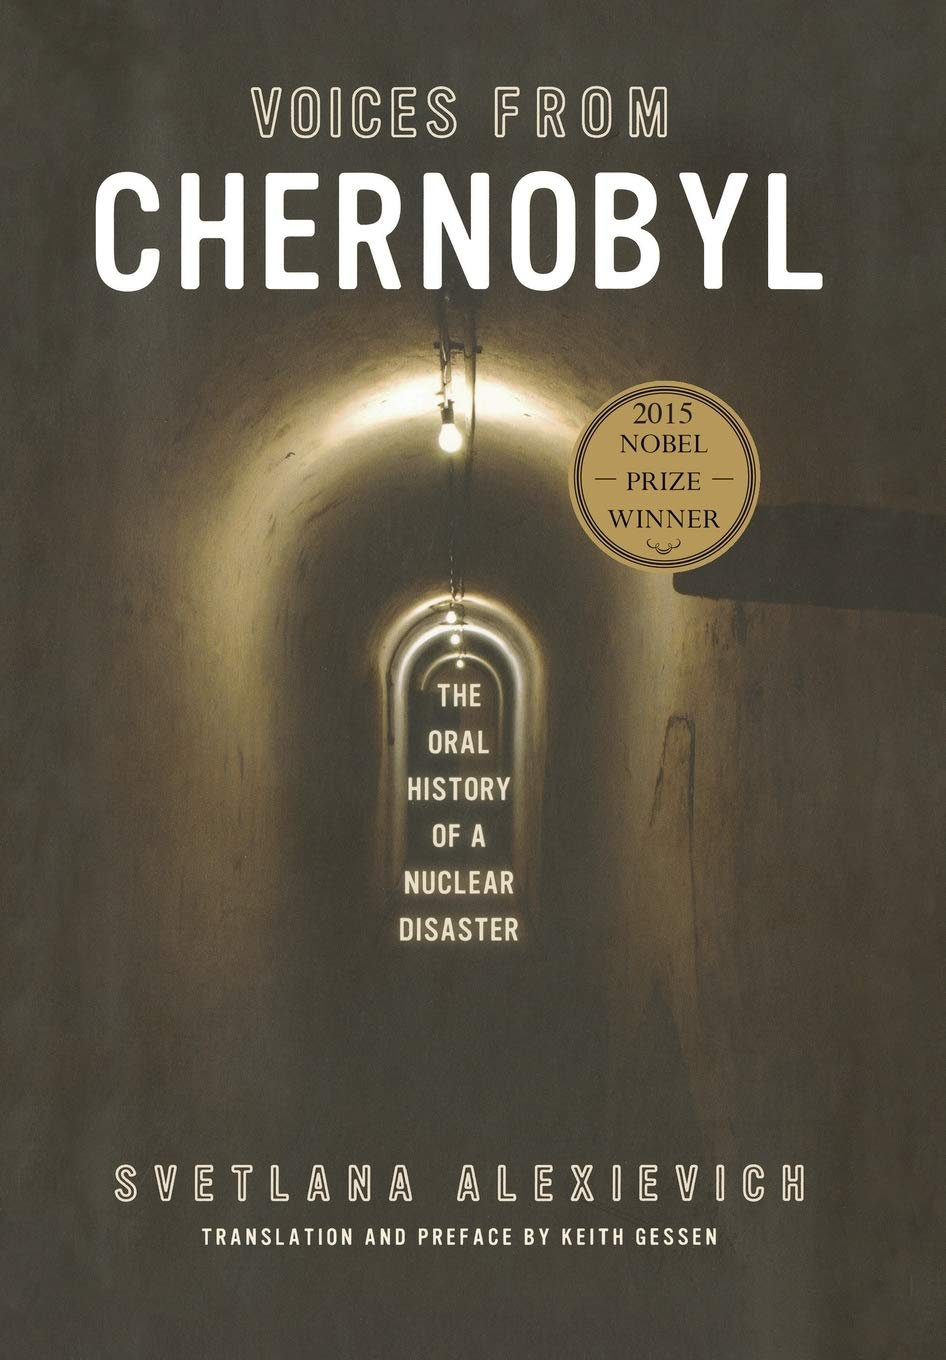 Voices From Chernobyl: The Oral History of a Nuclear Disaster by Dalkey Archive Press